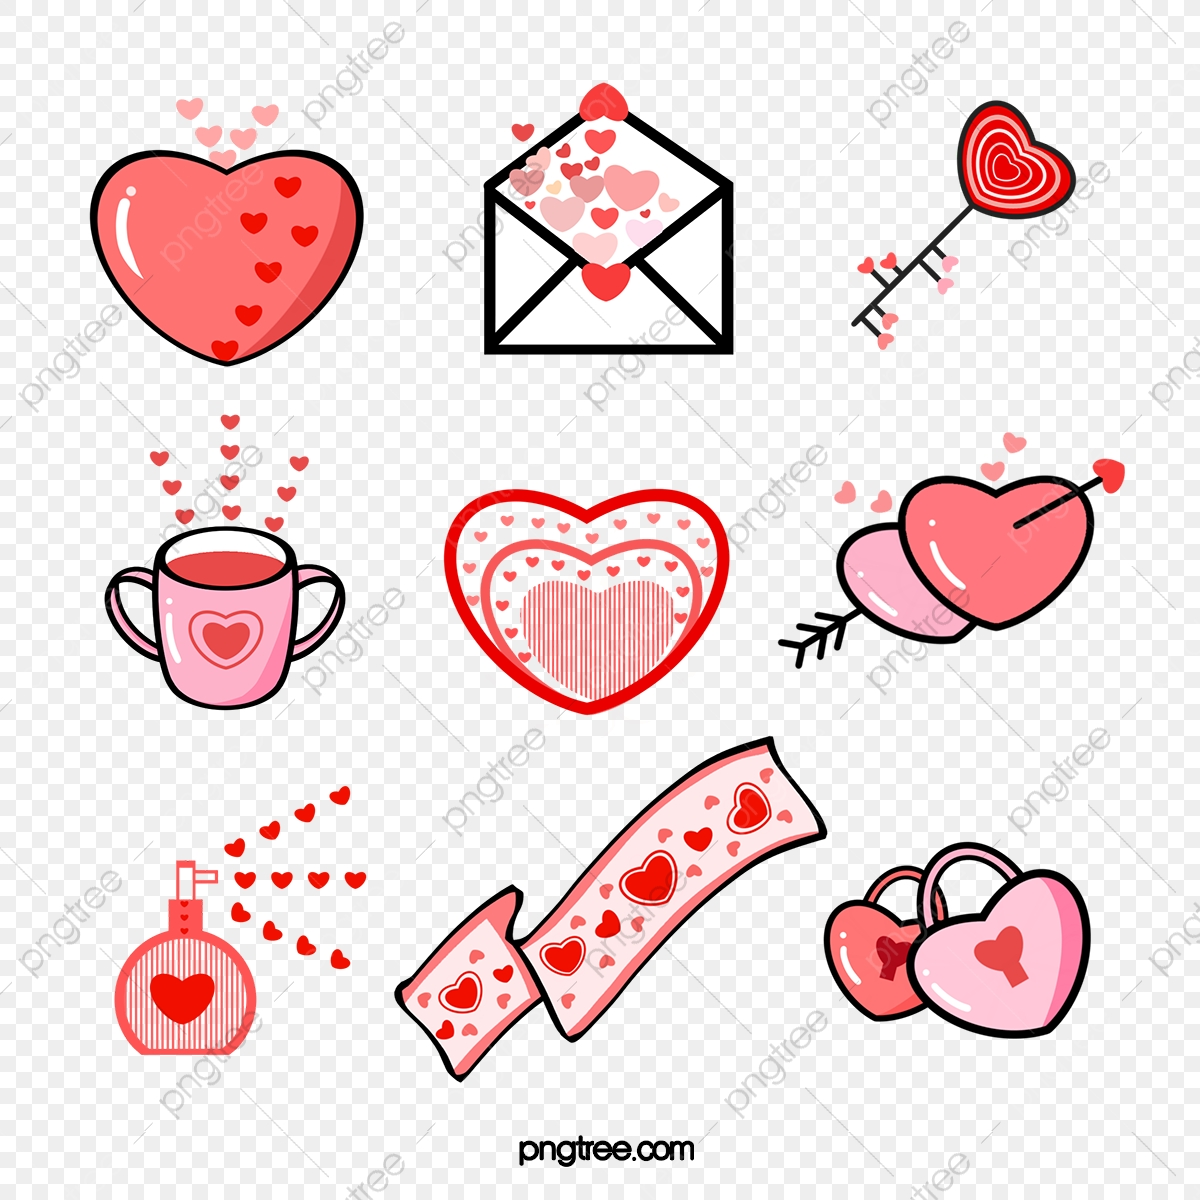 10+ Valentine Candy Clipart Too Cute